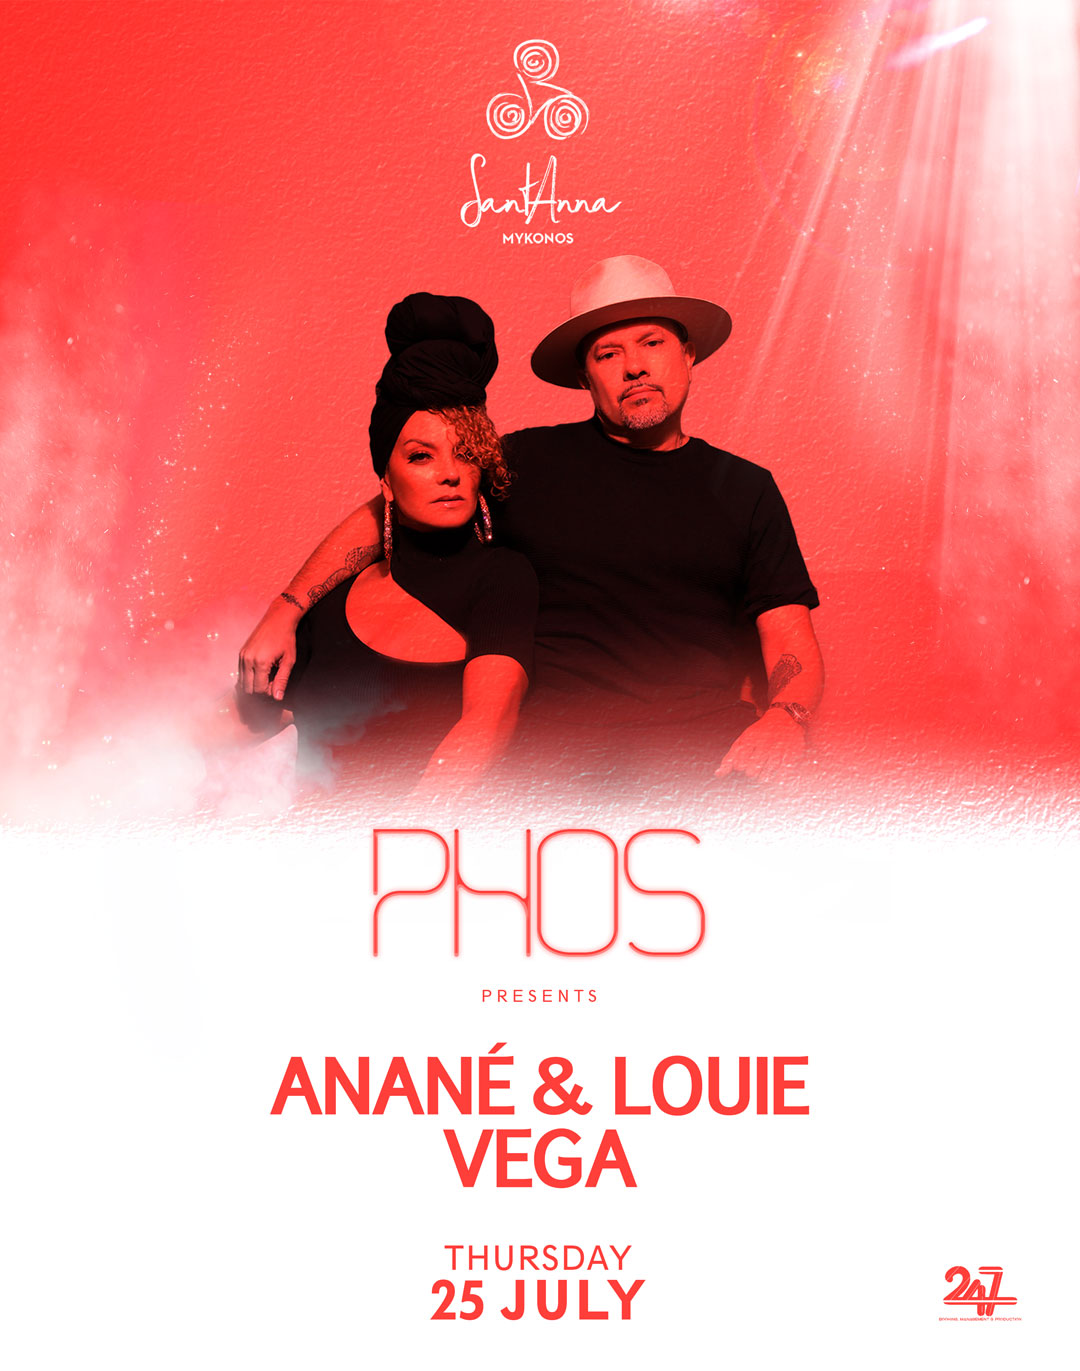 phos santanna mykonos 25 july